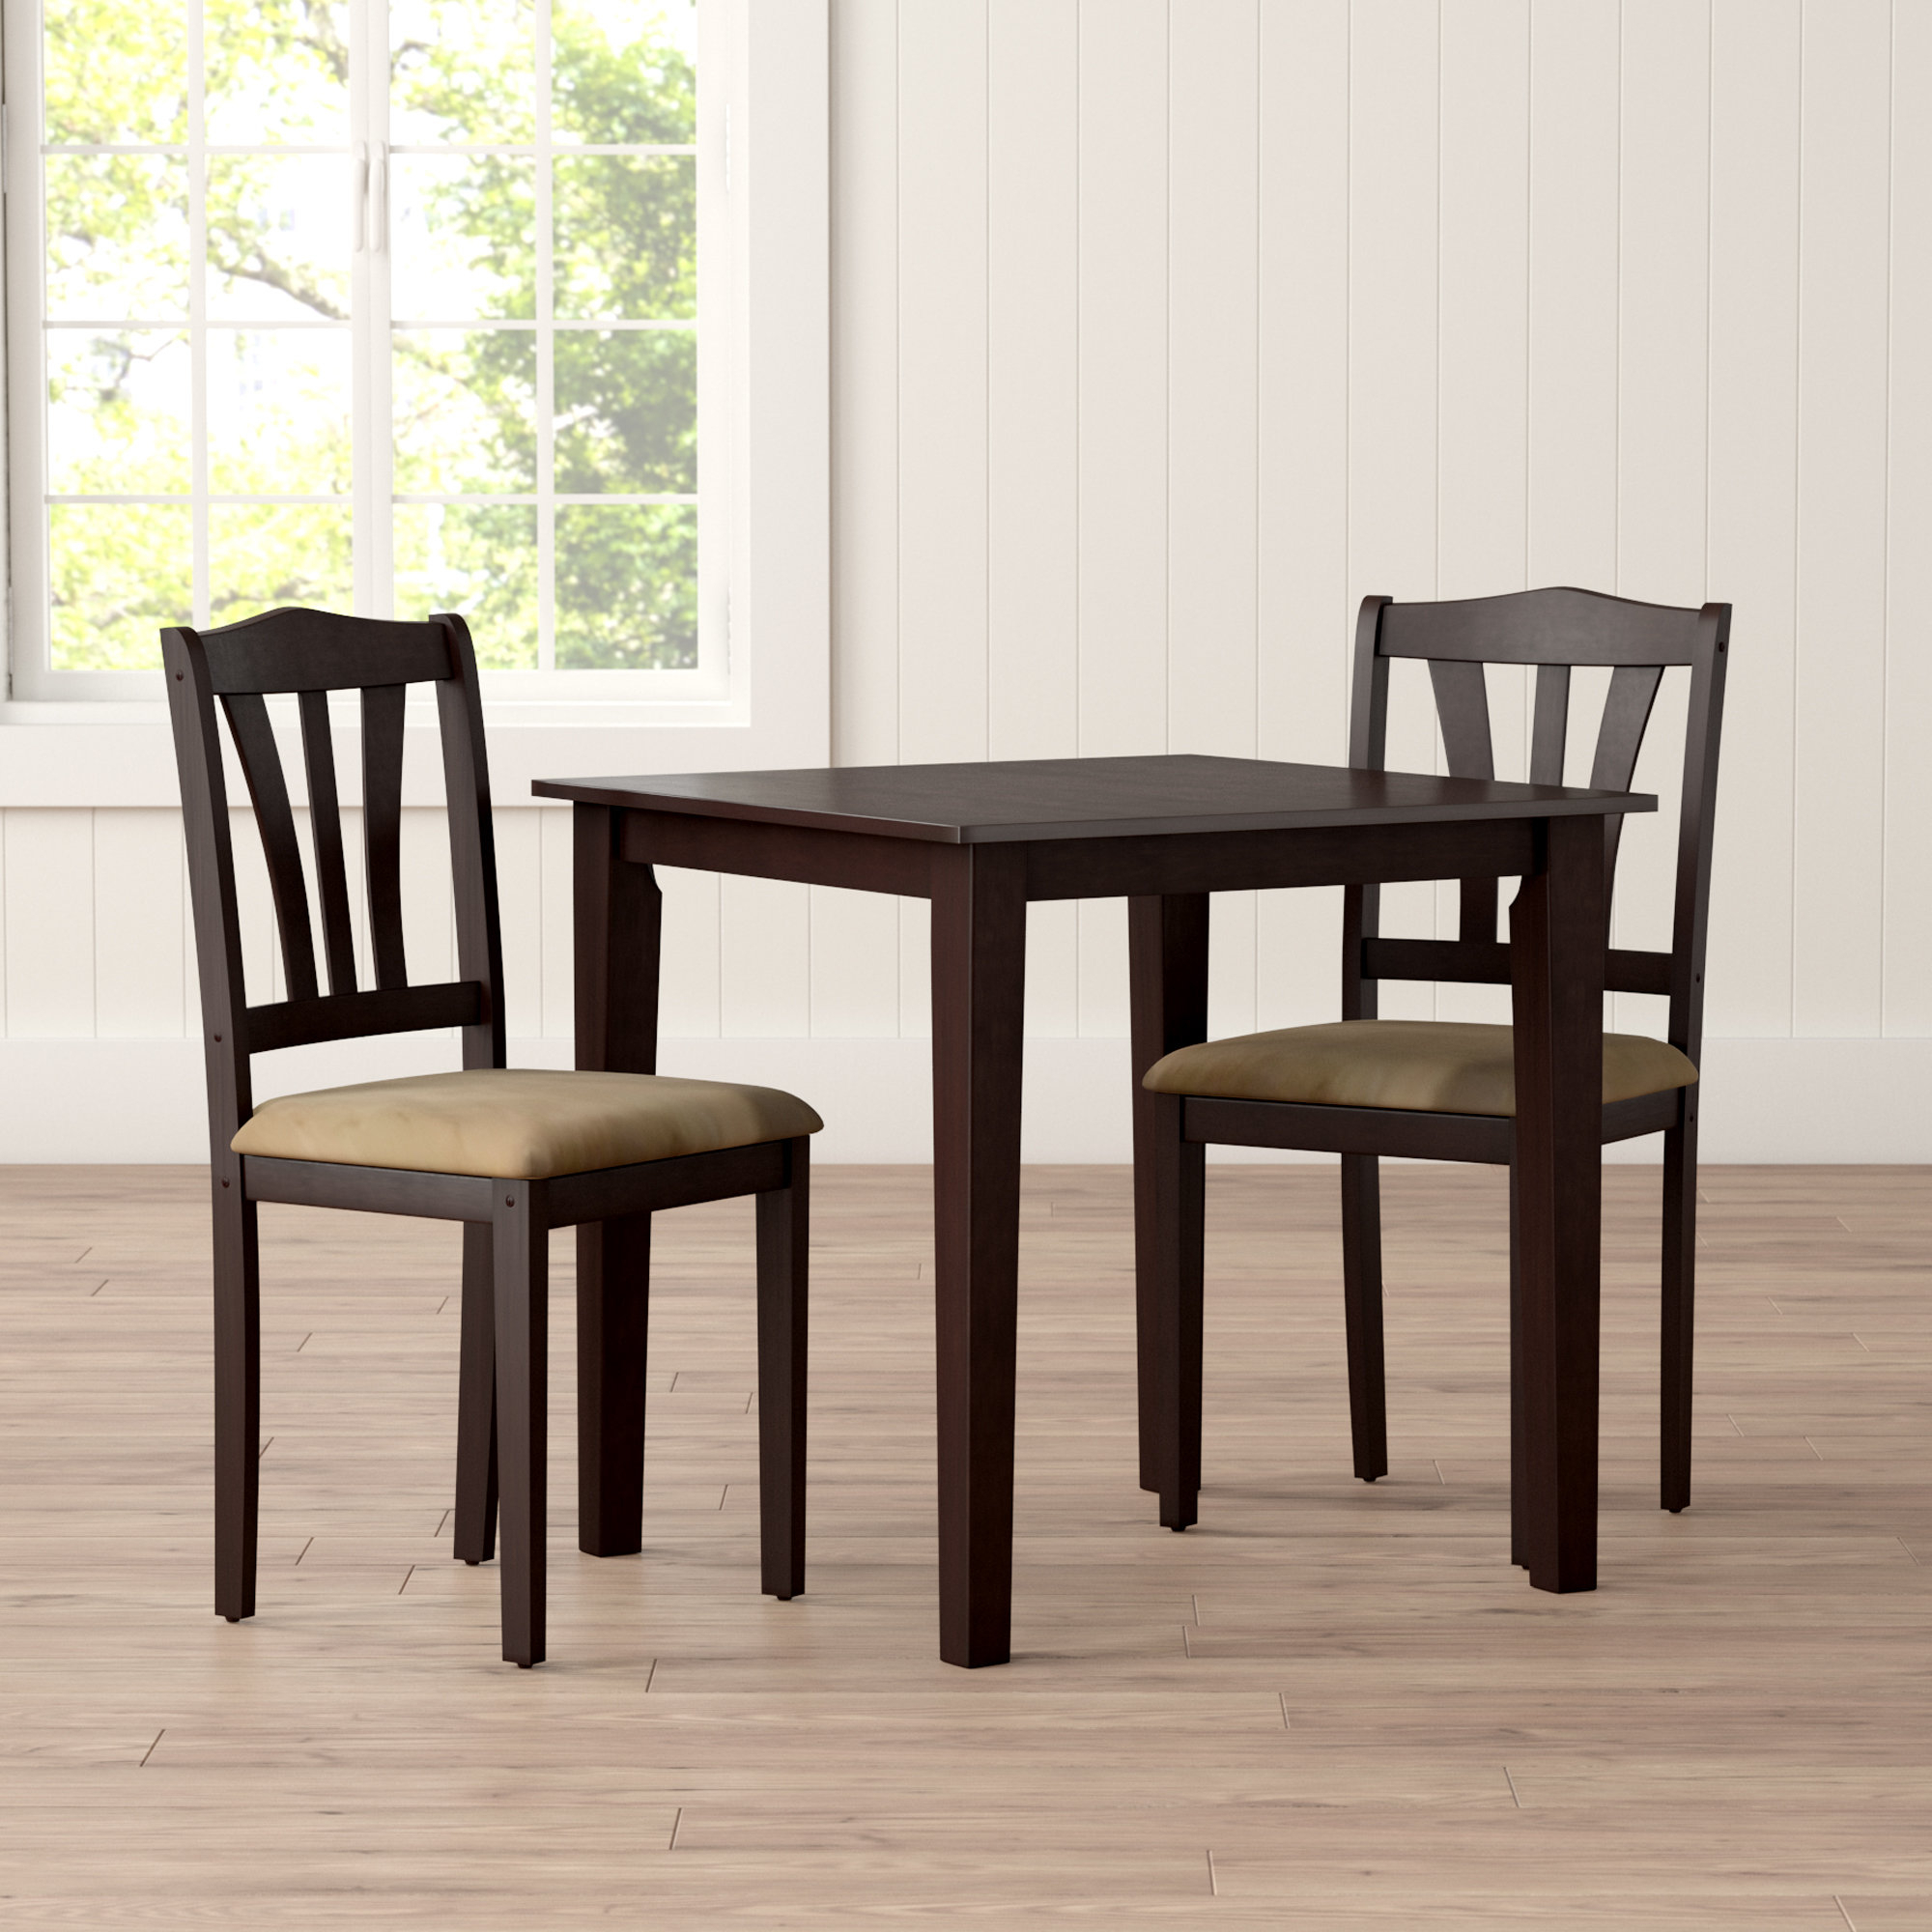 Baillie 3 Piece Dining Sets Throughout Best And Newest Dinah 3 Piece Dining Set (View 4 of 20)